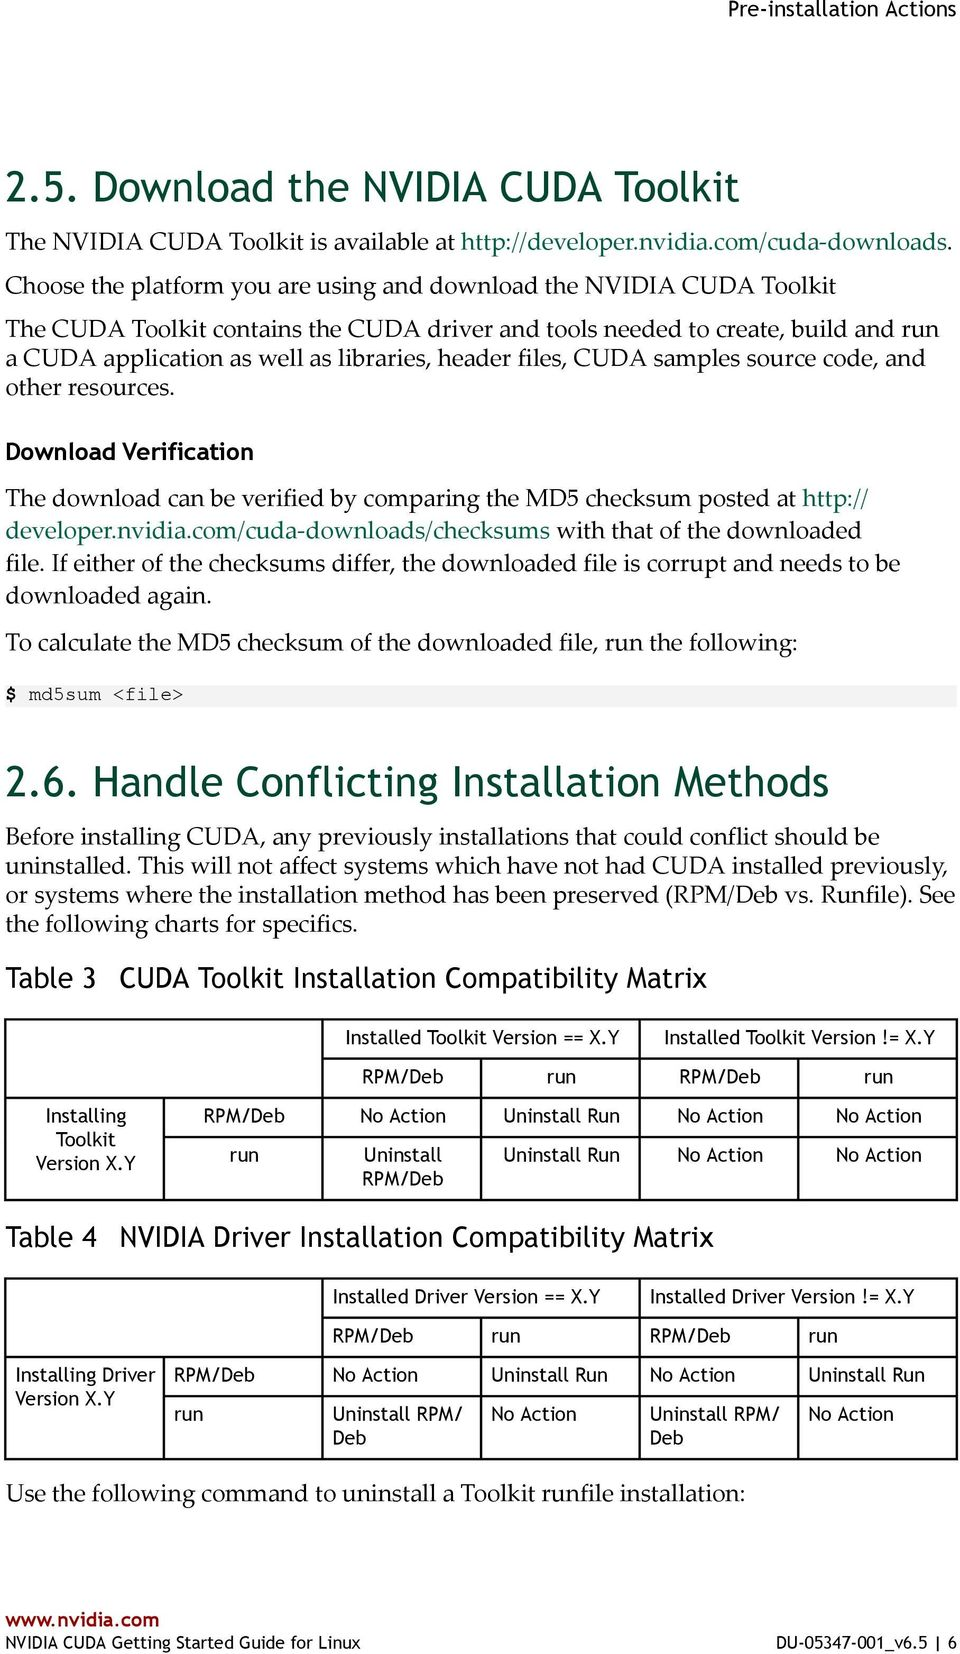 NVIDIA CUDA GETTING STARTED GUIDE FOR LINUX - PDF